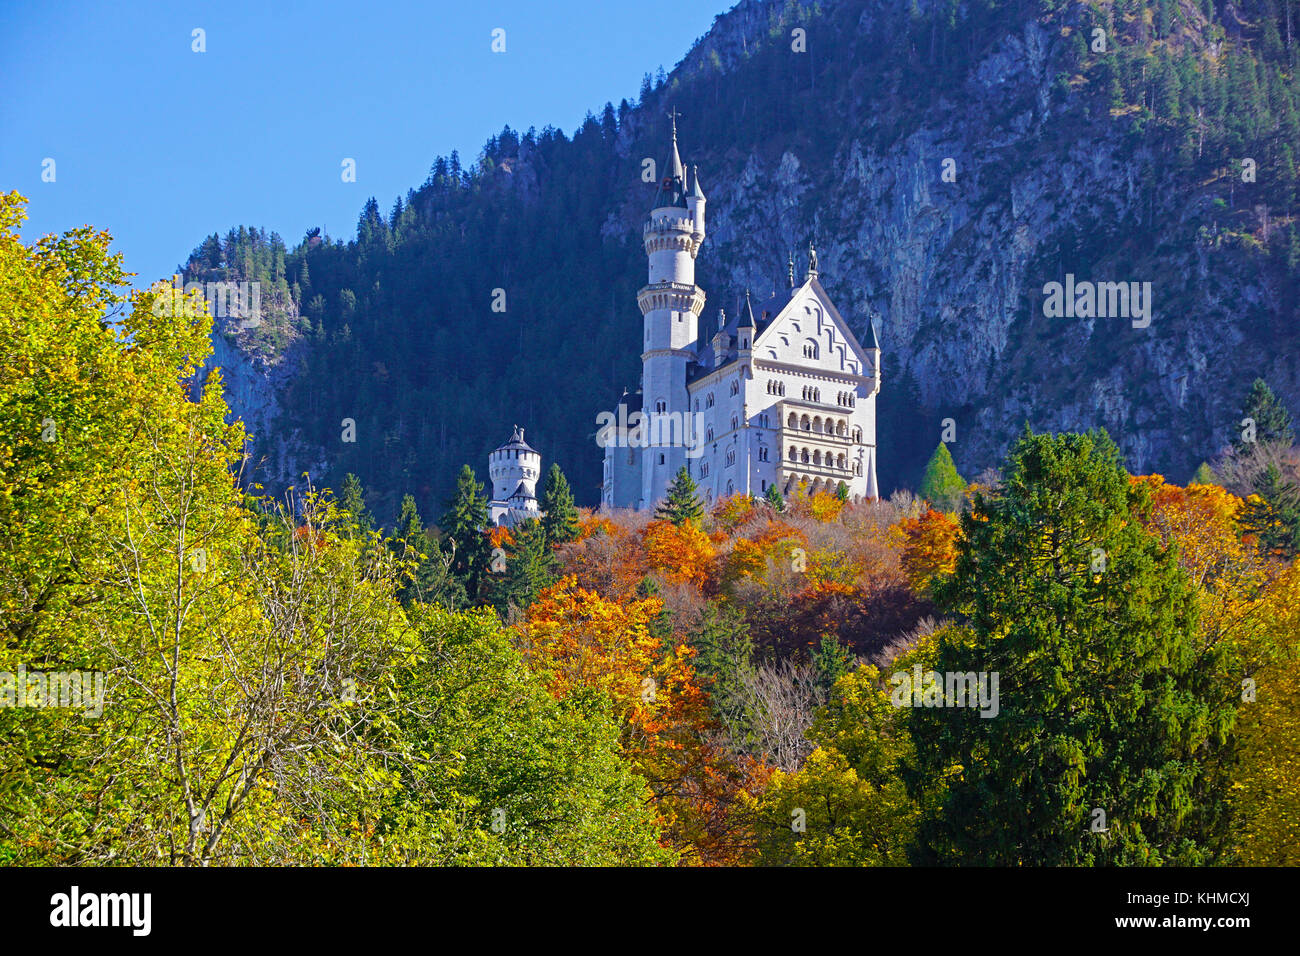 Mad King Ludwig's Neuschwanstein Castle - Stock Image